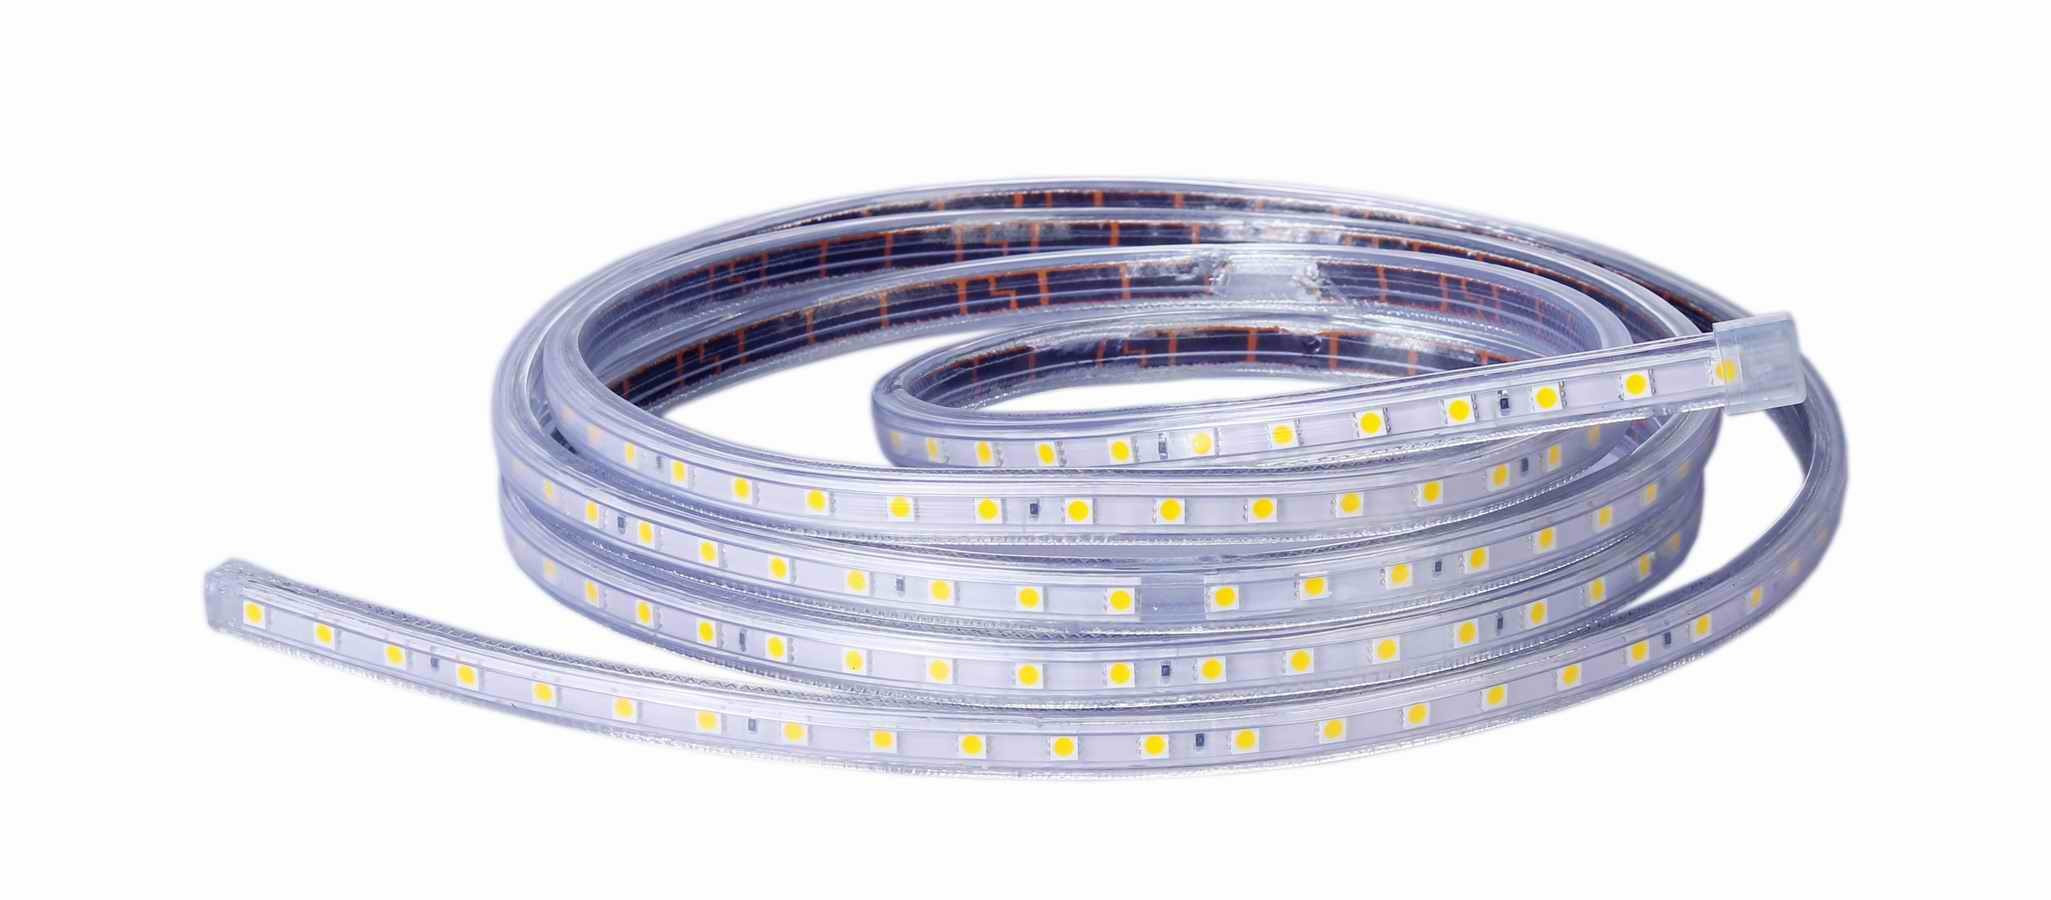 Comprar Tiras De Led Maravilloso Led Flexible Strip Light Smd5050 220v 30led Meter – Led Of Comprar Tiras De Led Encantador Prar Tira Led 5050 14wm Bri as